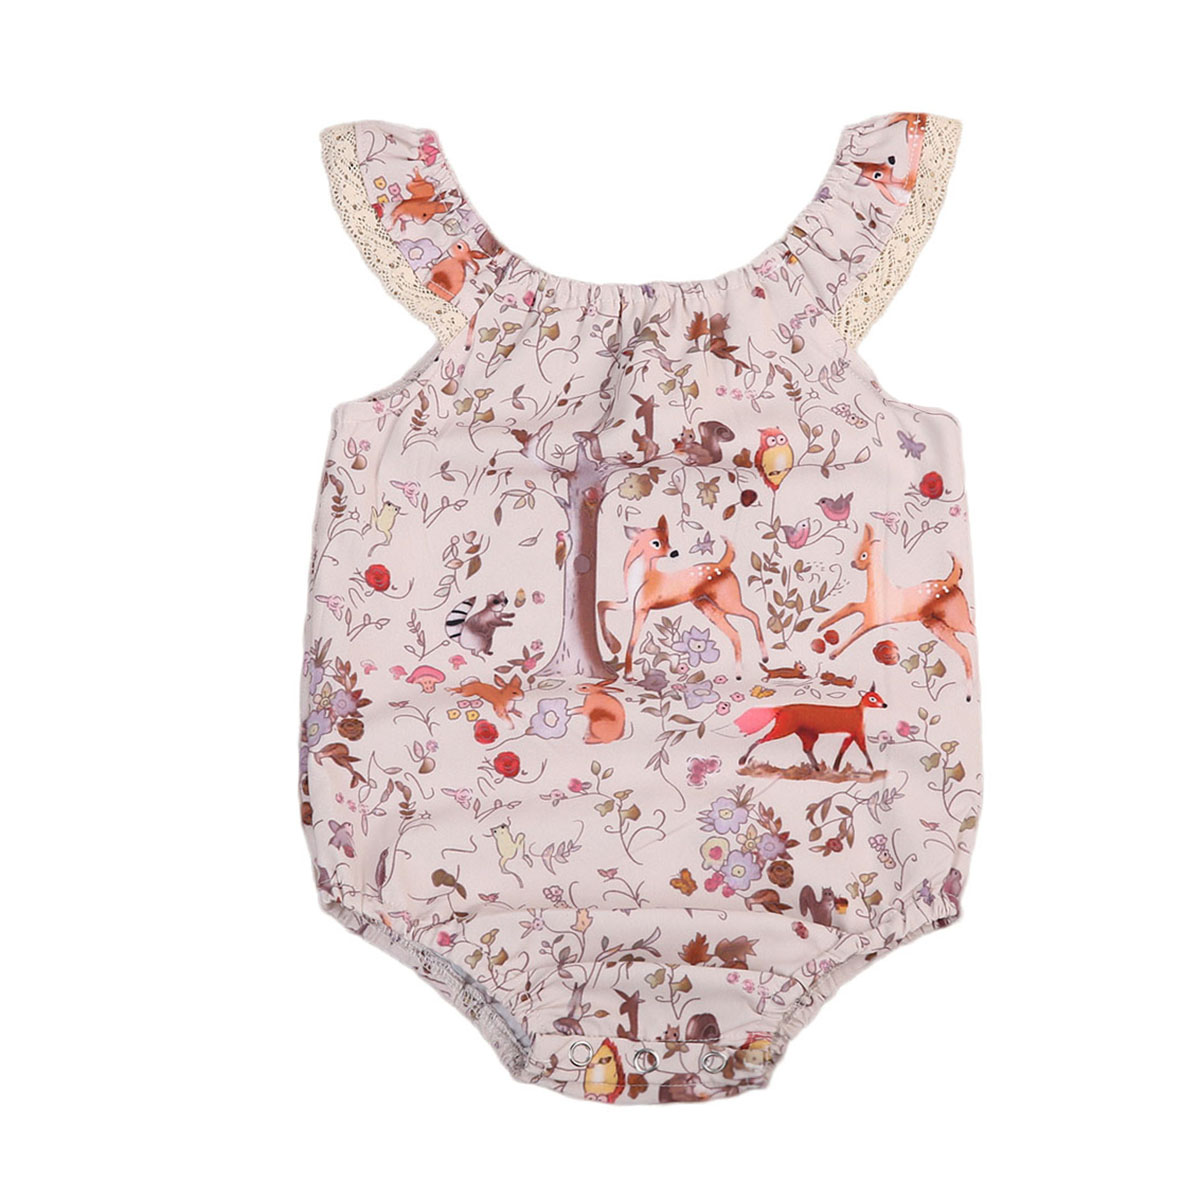 Newborn Infant Baby Girl Sleeveless Floral Romper Jumpsuit Sunsuit Cartoon Deer Clothes One-Pieces Outfits 2017 summer cute newborn baby boy girl cartoon fox romper sleeveless backless jumpsuit one pieces outfits sunsuit 0 24m